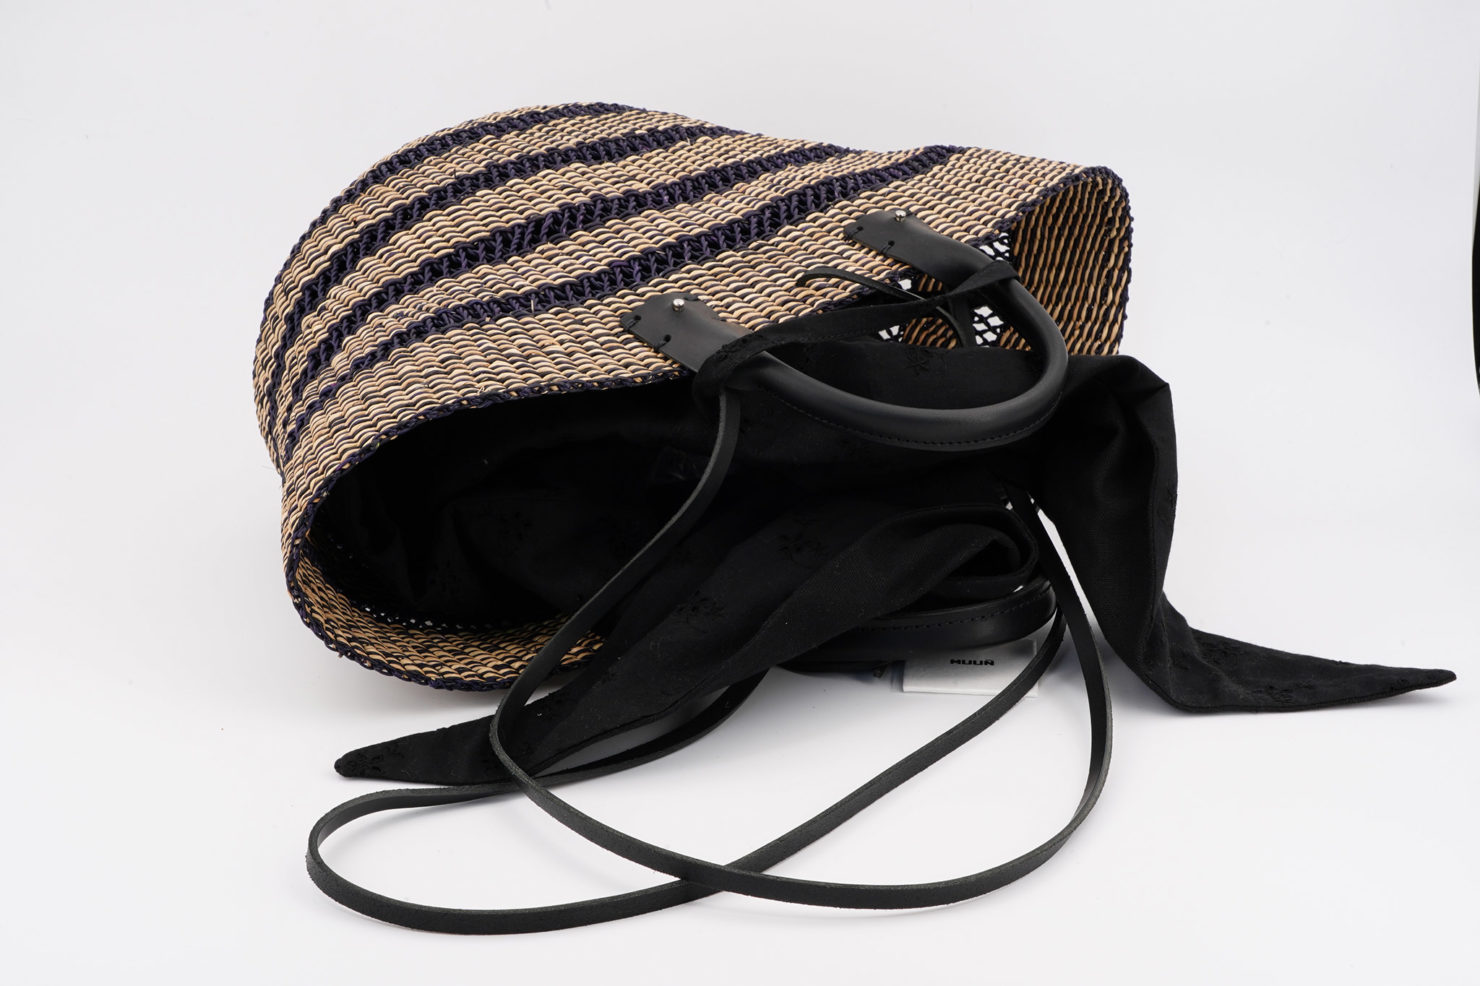 LAUREN FLOR STRAW BAG WITH REMOVABLE POUCH OPEN MUUN